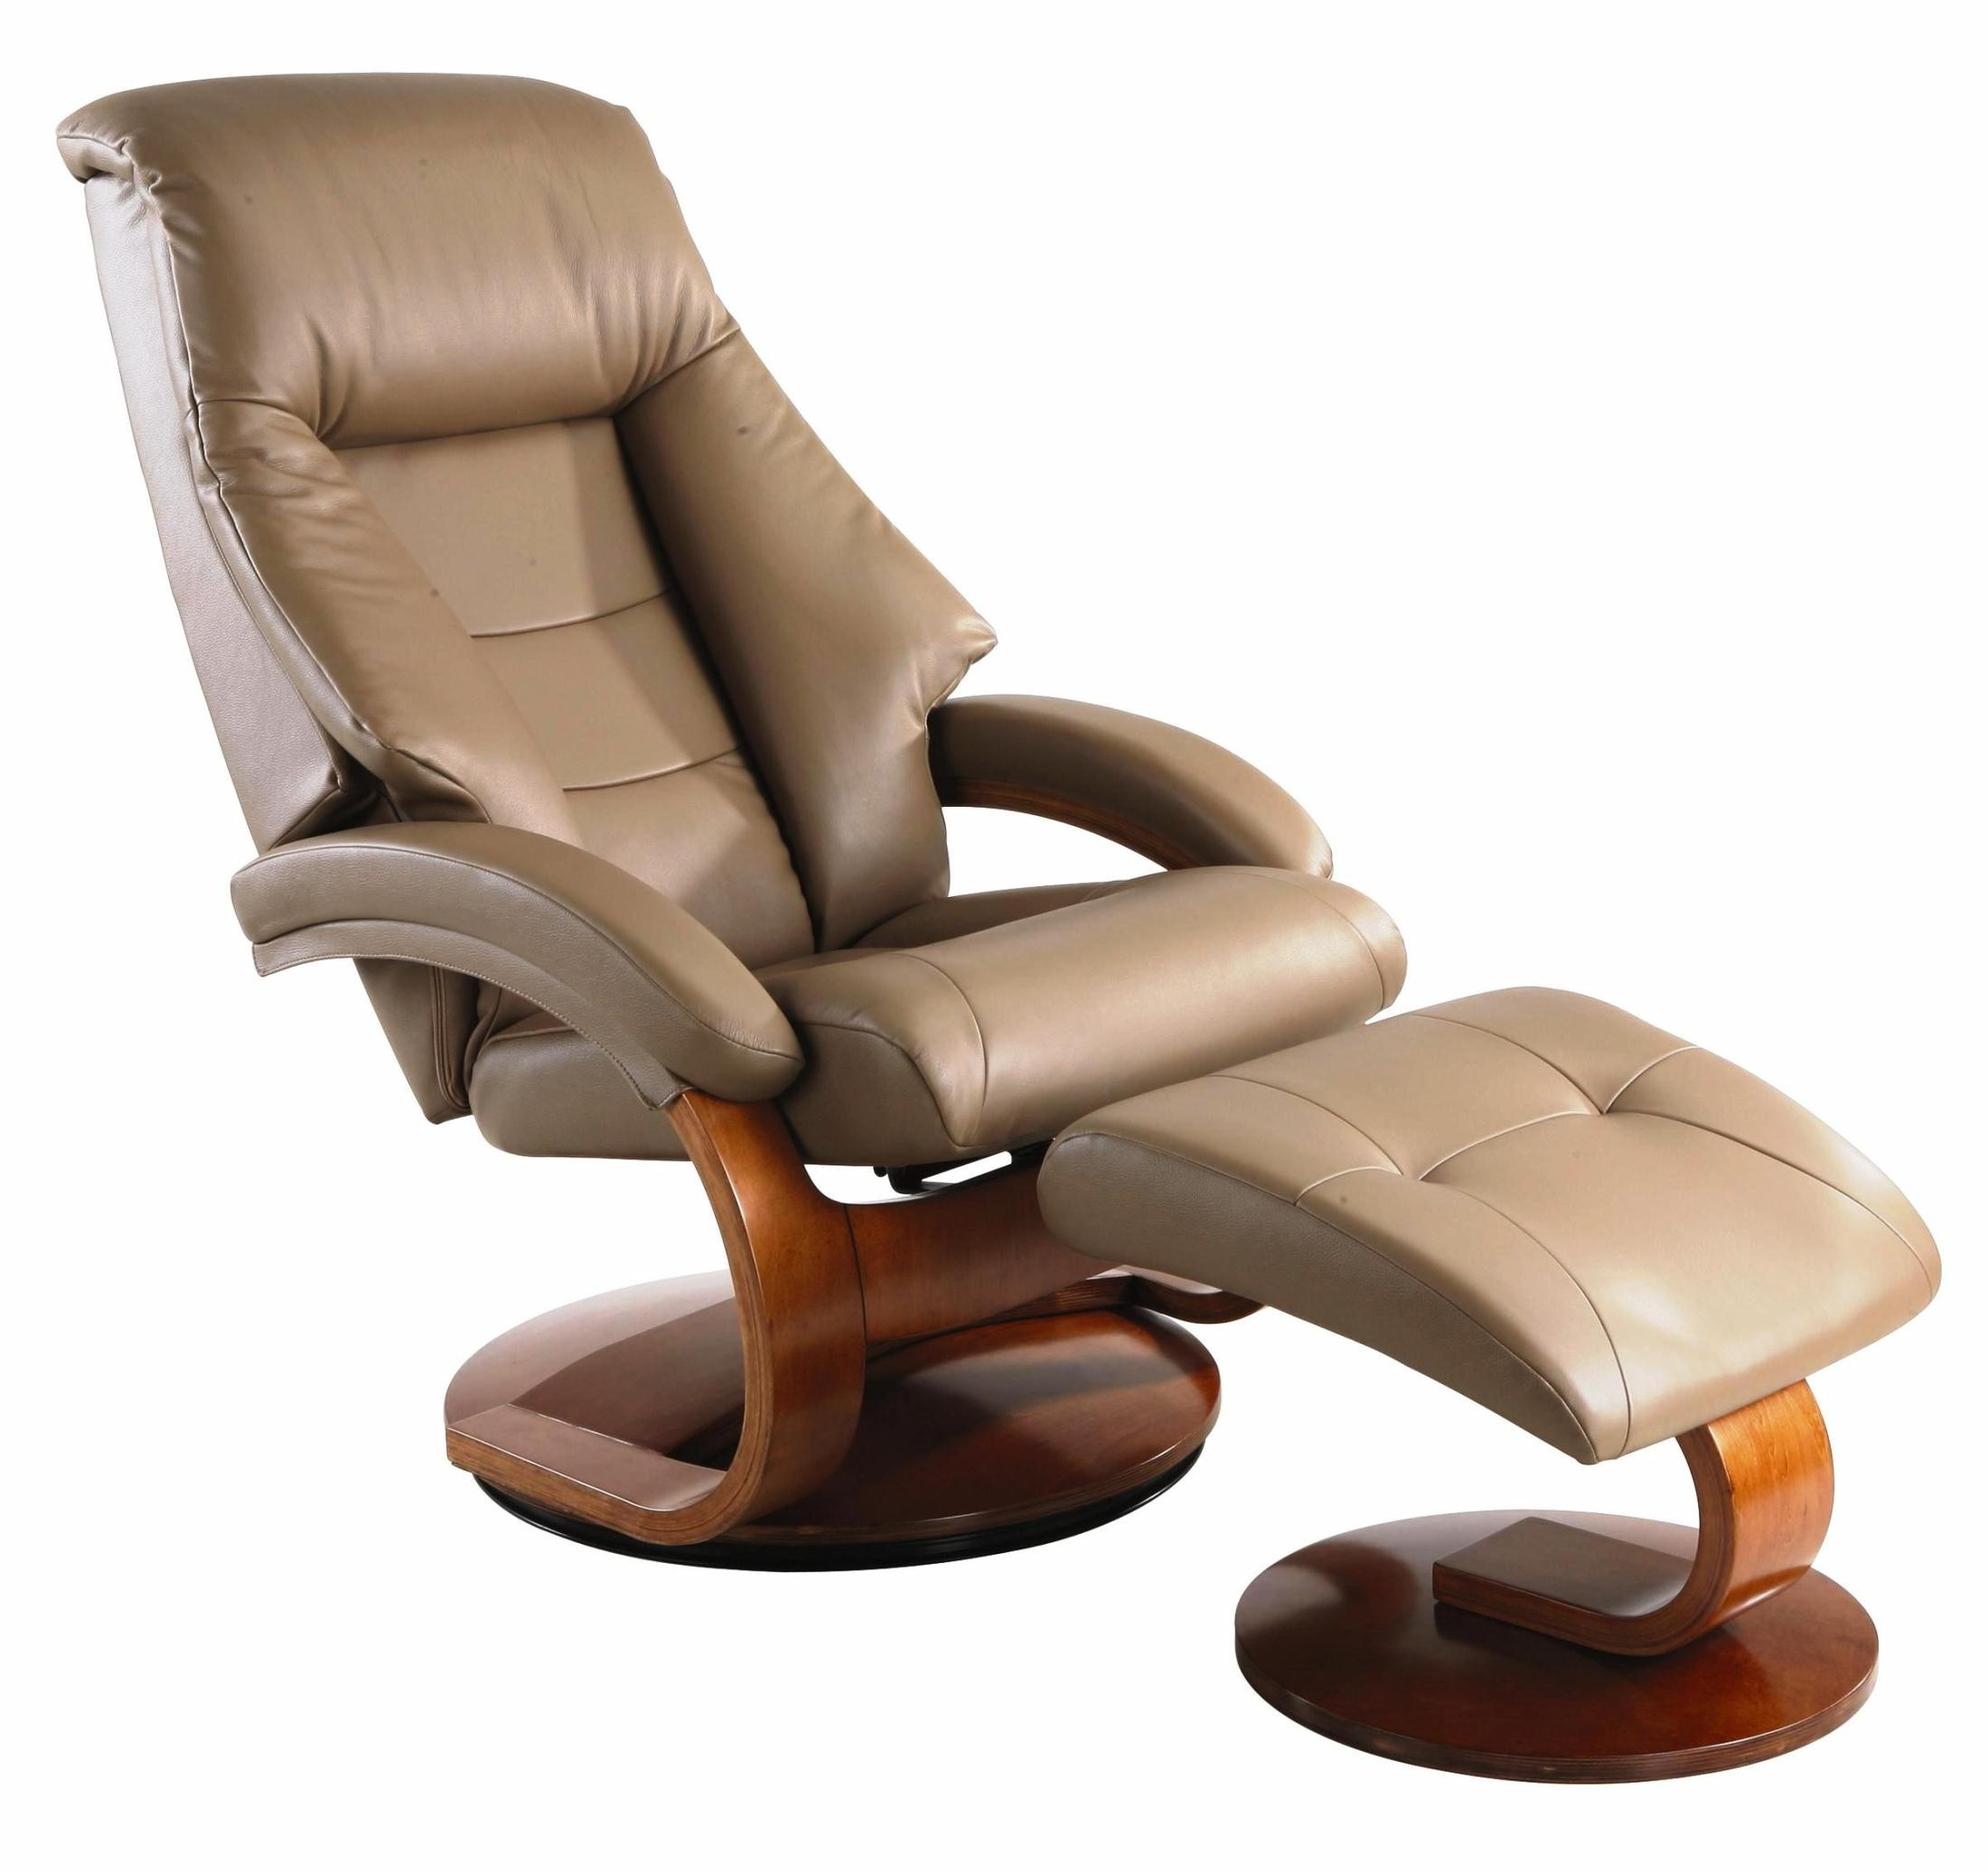 Comfy Chair With Ottoman Oslo Sand Tan Top Grain Leather Swivel Recliner From Mac